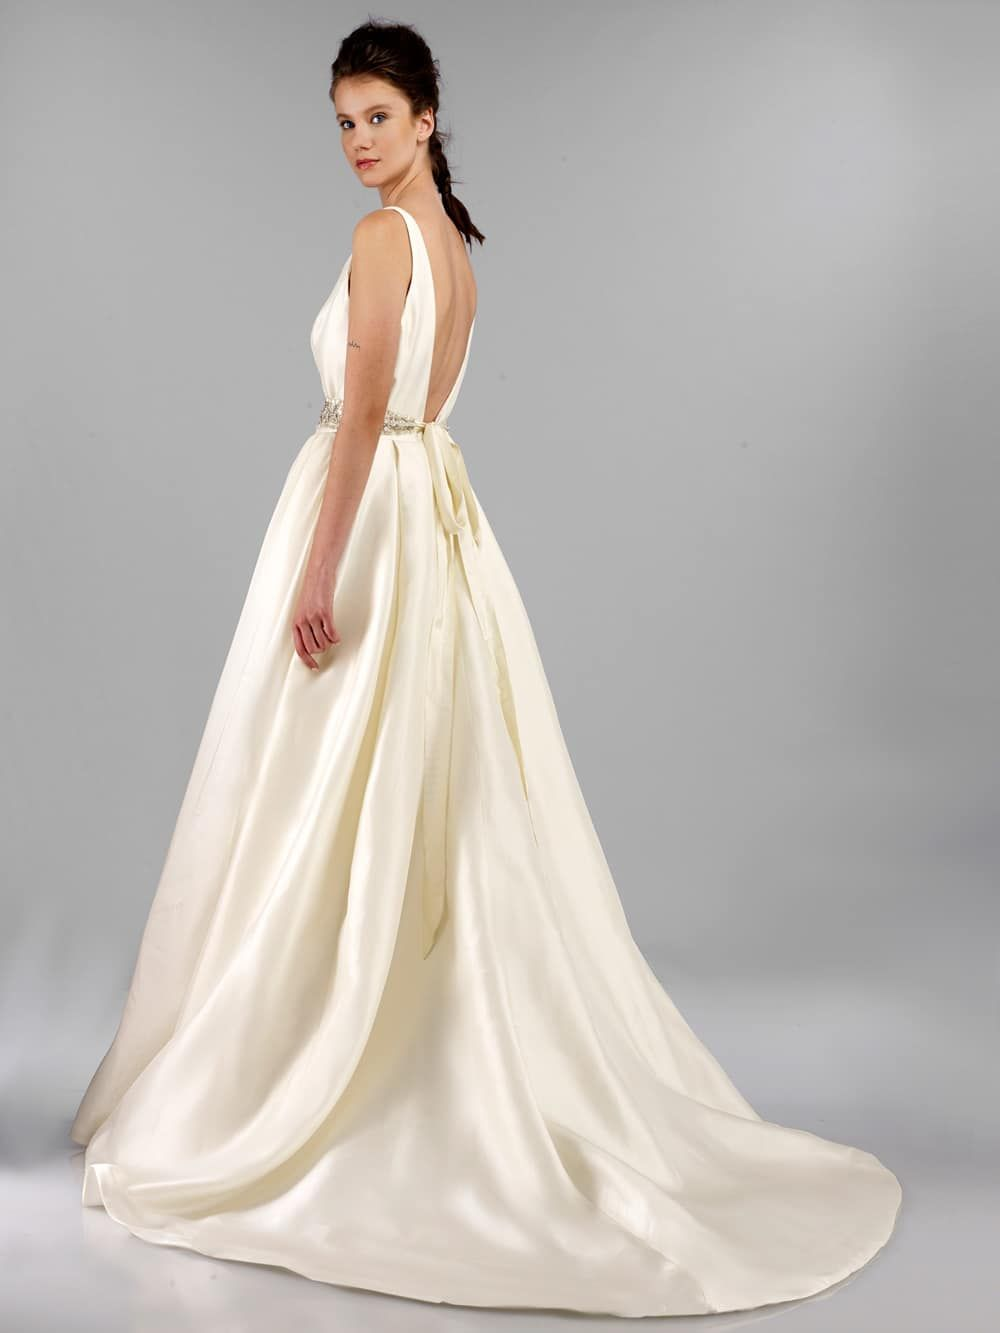 Tulle ny ramsey gilded collection pinterest ball gowns and gowns ombrellifo Choice Image